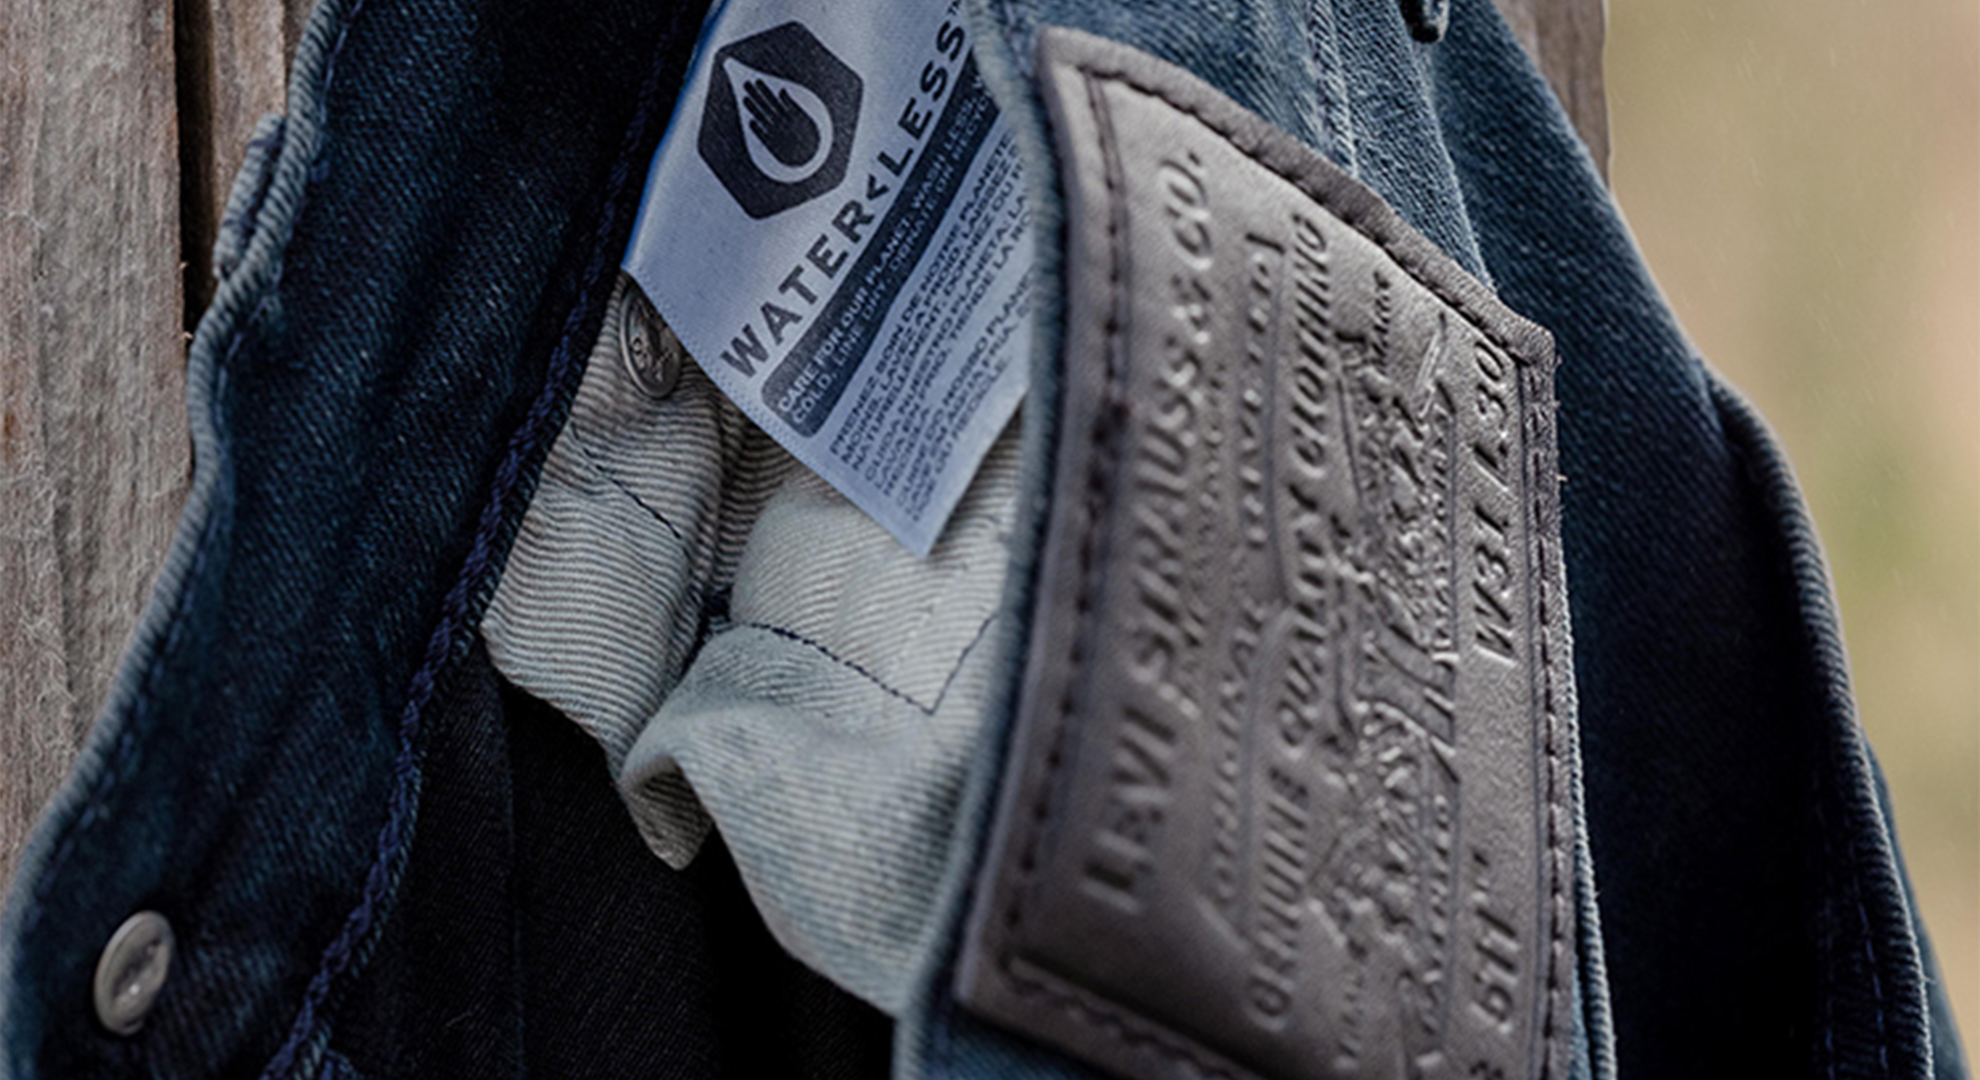 Water<Less® logo in a Levi's jean